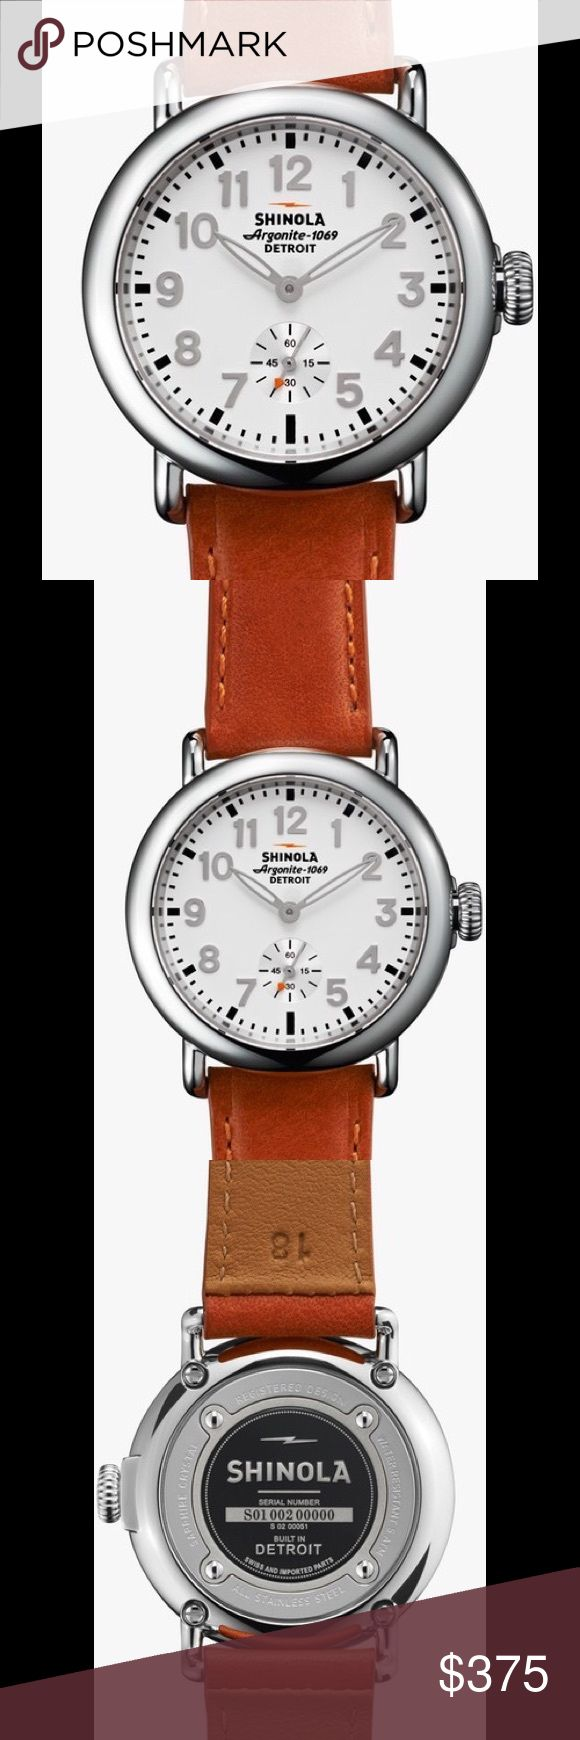 Shinola Runwell 36m Watch White Dial Leather Strap 2 DAY SALE ! Runwell watch by Shinola. 36mm stainless steel case. Premium American-made leather strap. Double curve sapphire window. Round dial with Arabic numerals and luminous hands. Shinola Detroit-built Argonite 1069 quartz movement with Swiss parts. Water resistant up to 50 meters (5ATM/160 ft.). Handmade in Detroit from Swiss-made parts. Price firm. Shinola Accessories Watches